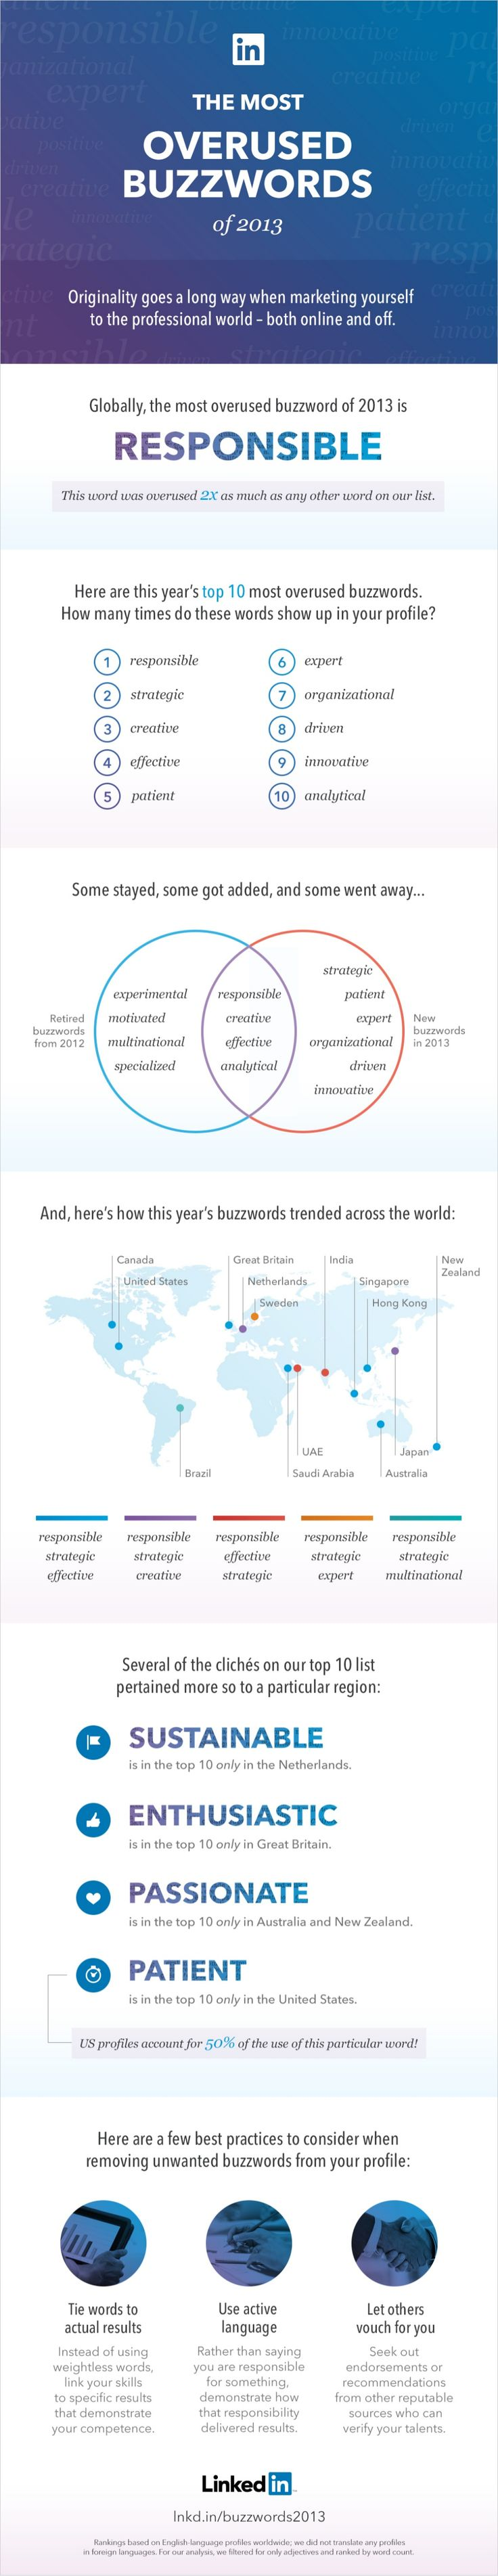 Linkedin: The Most Overused Buzzwords Of 2013 #infographic